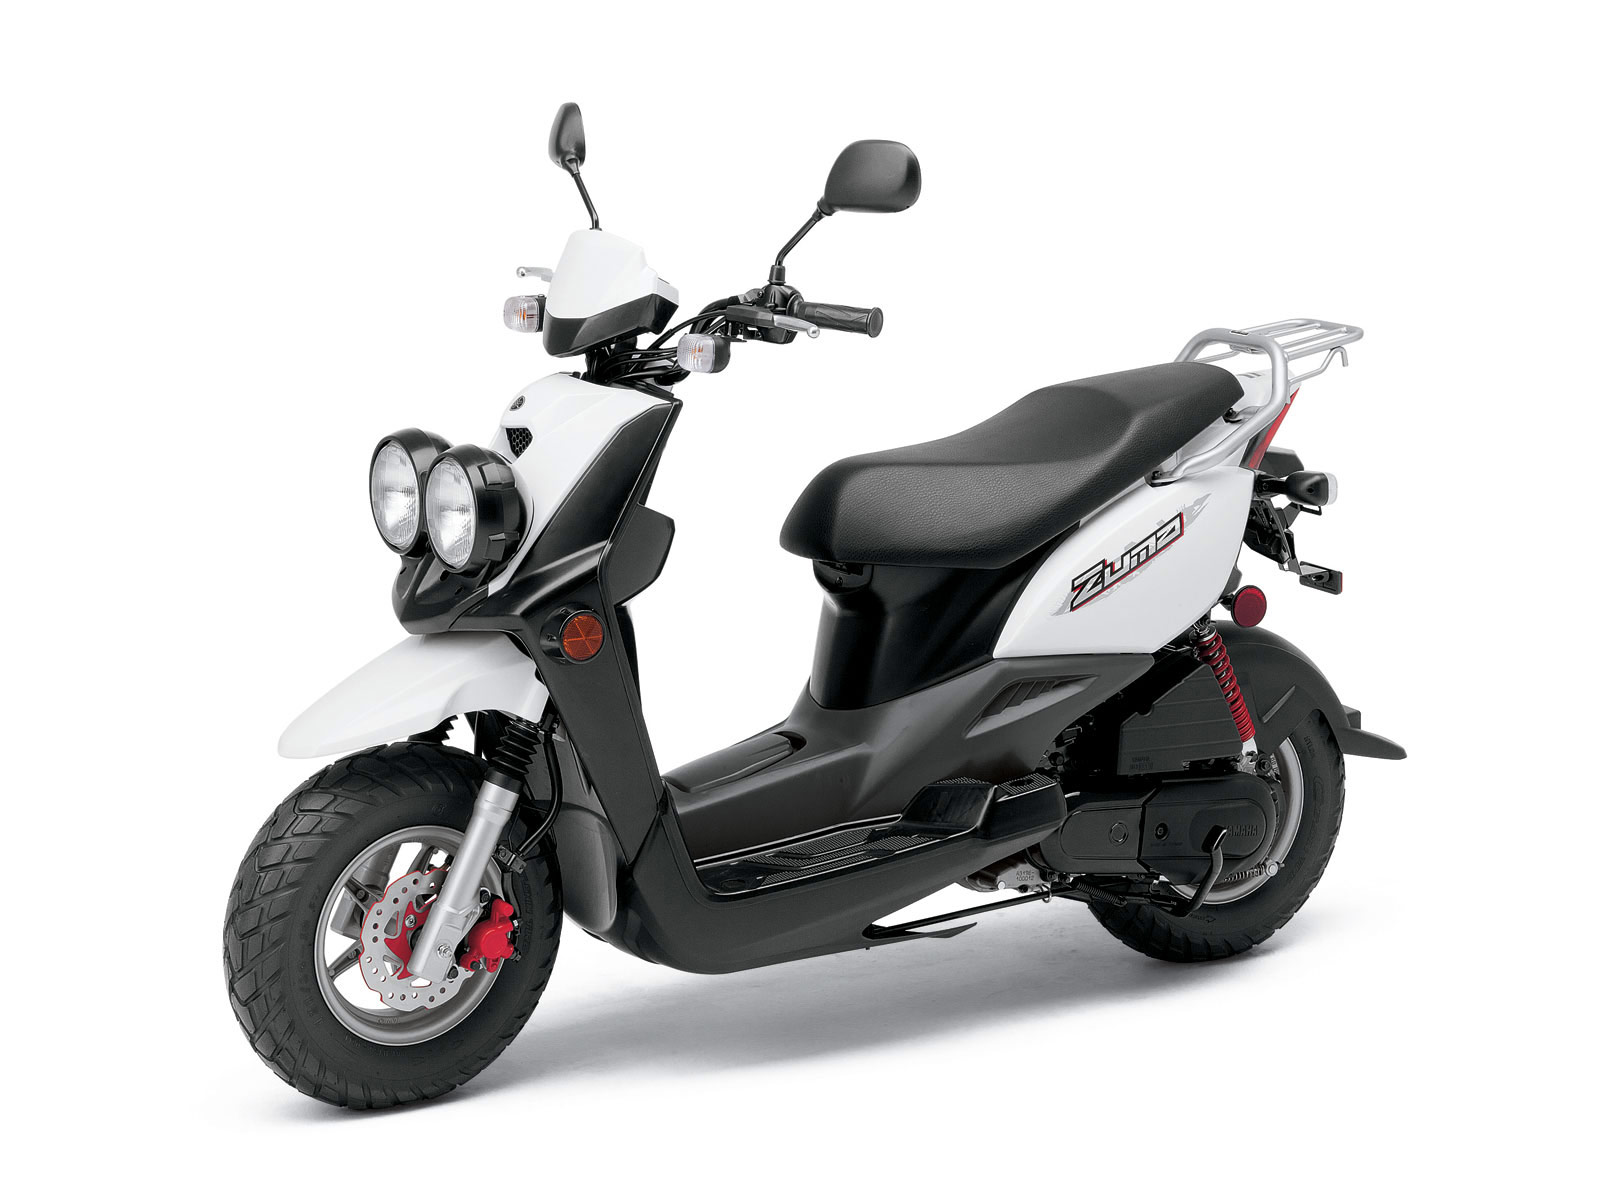 2012 yamaha zuma 50f scooter pictures insurance information. Black Bedroom Furniture Sets. Home Design Ideas